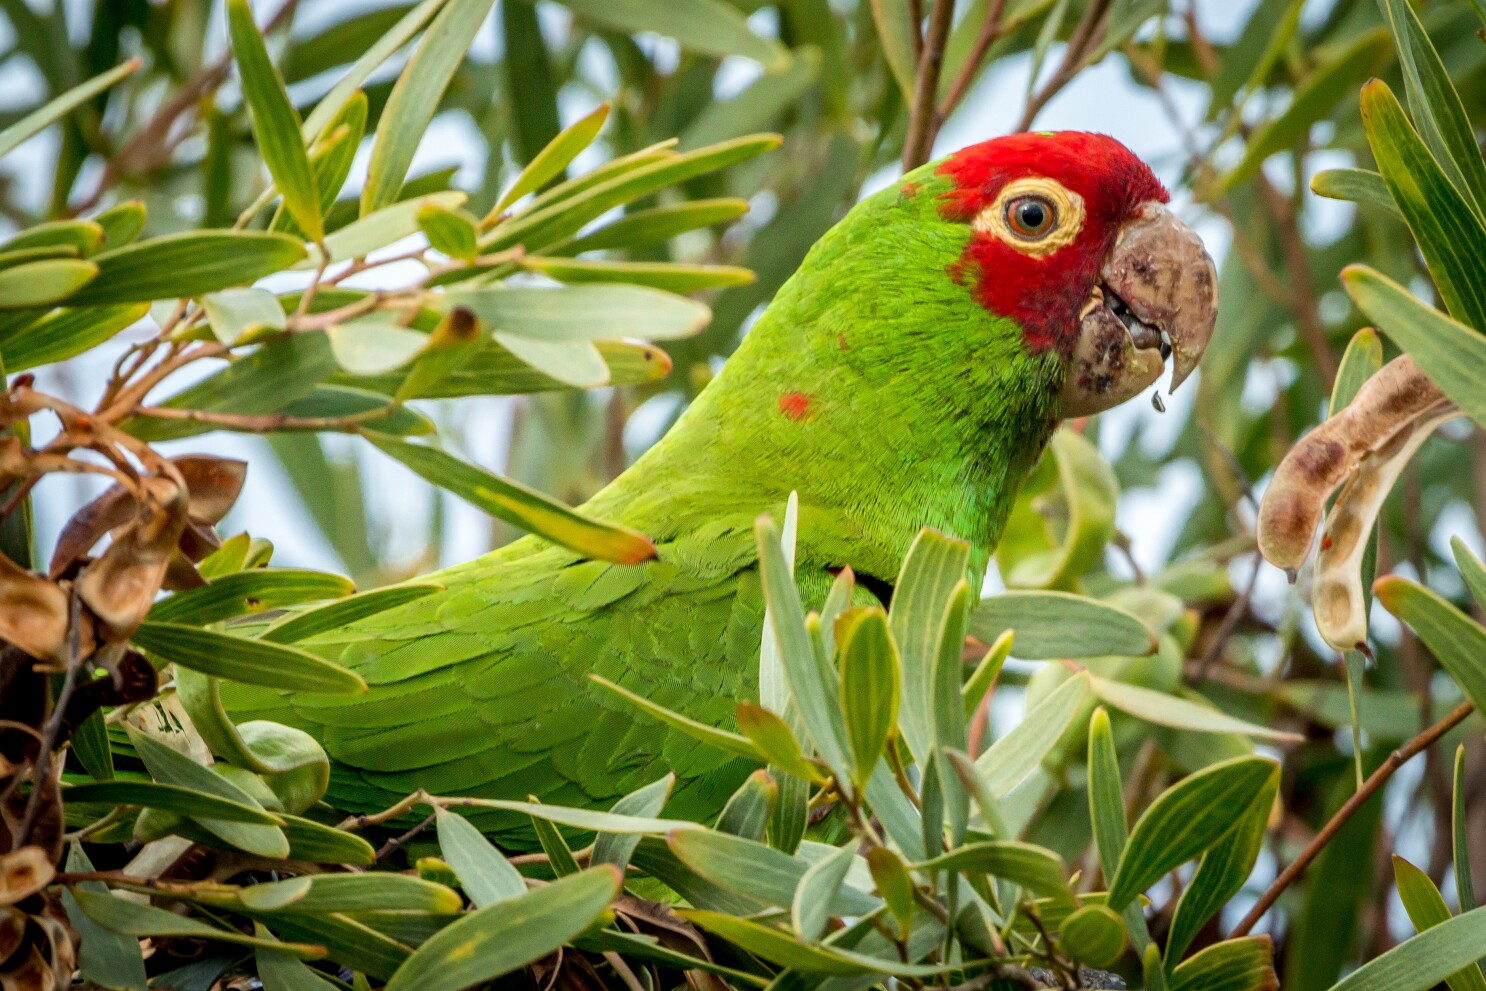 Parrot species are nonnative transplants in San Diego - The San